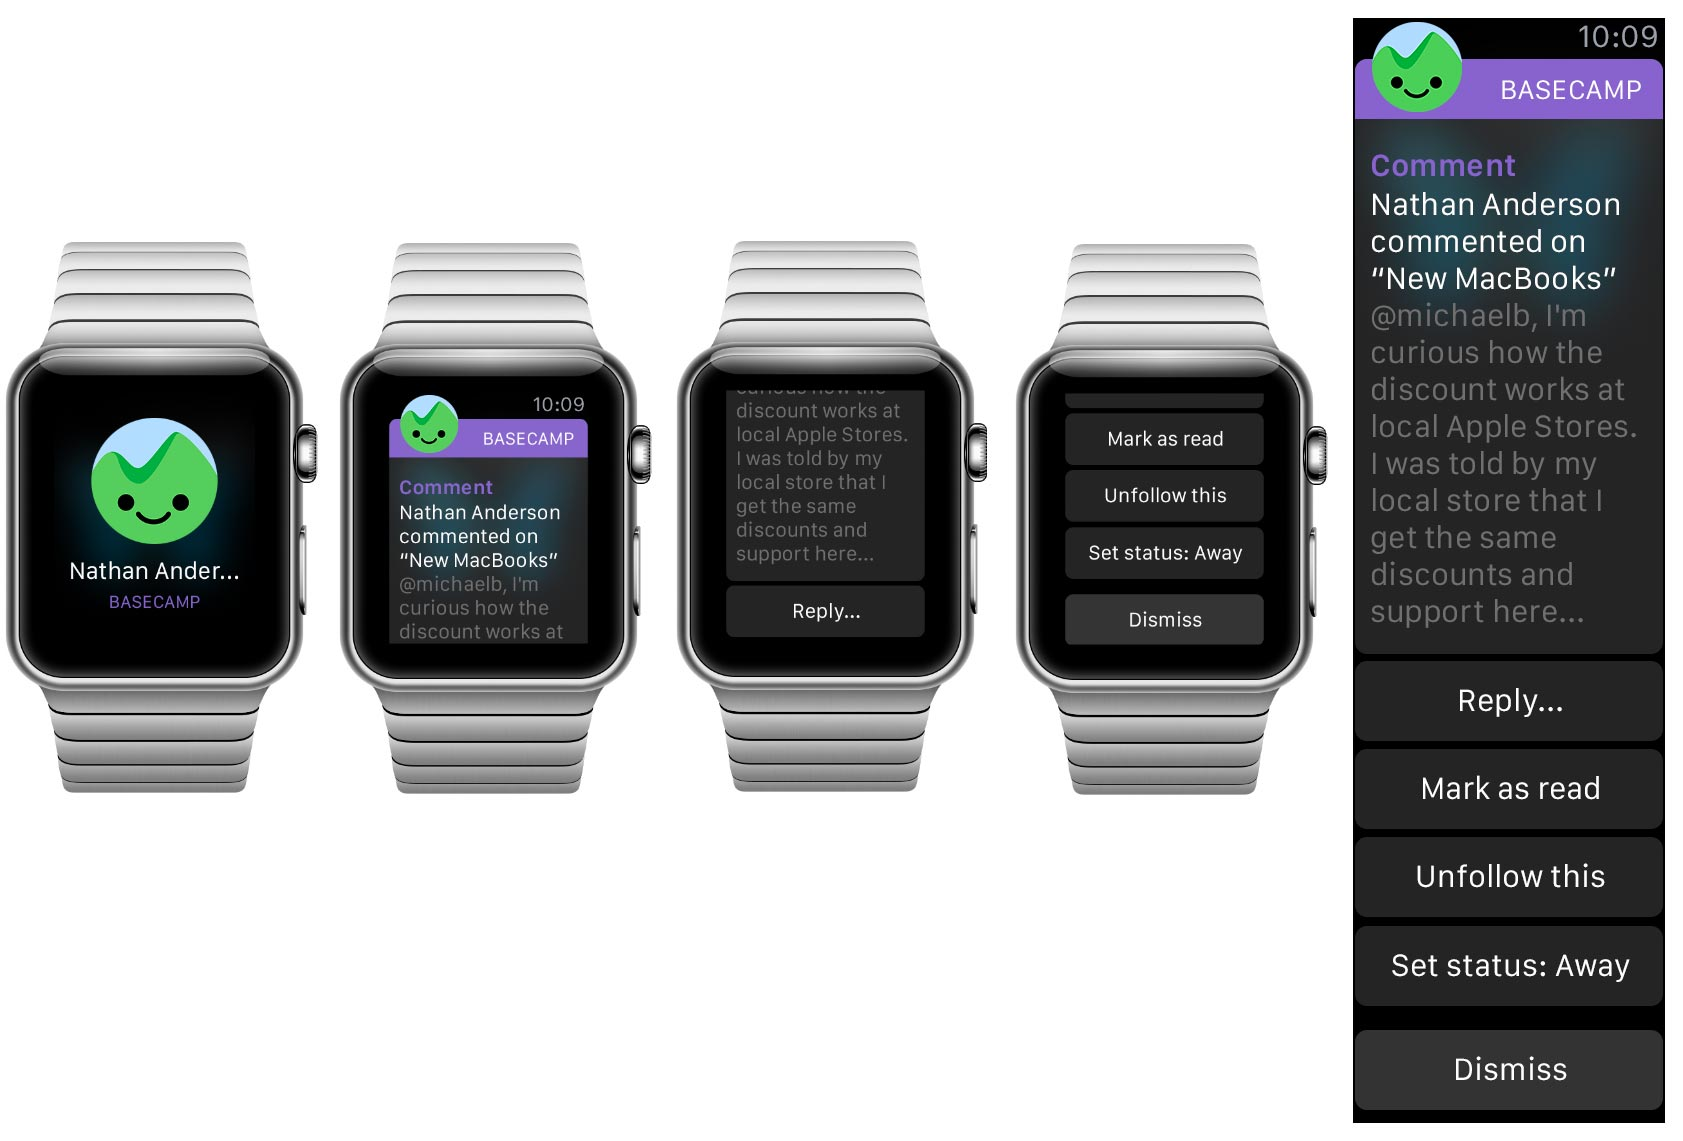 Apple Watch comments flow